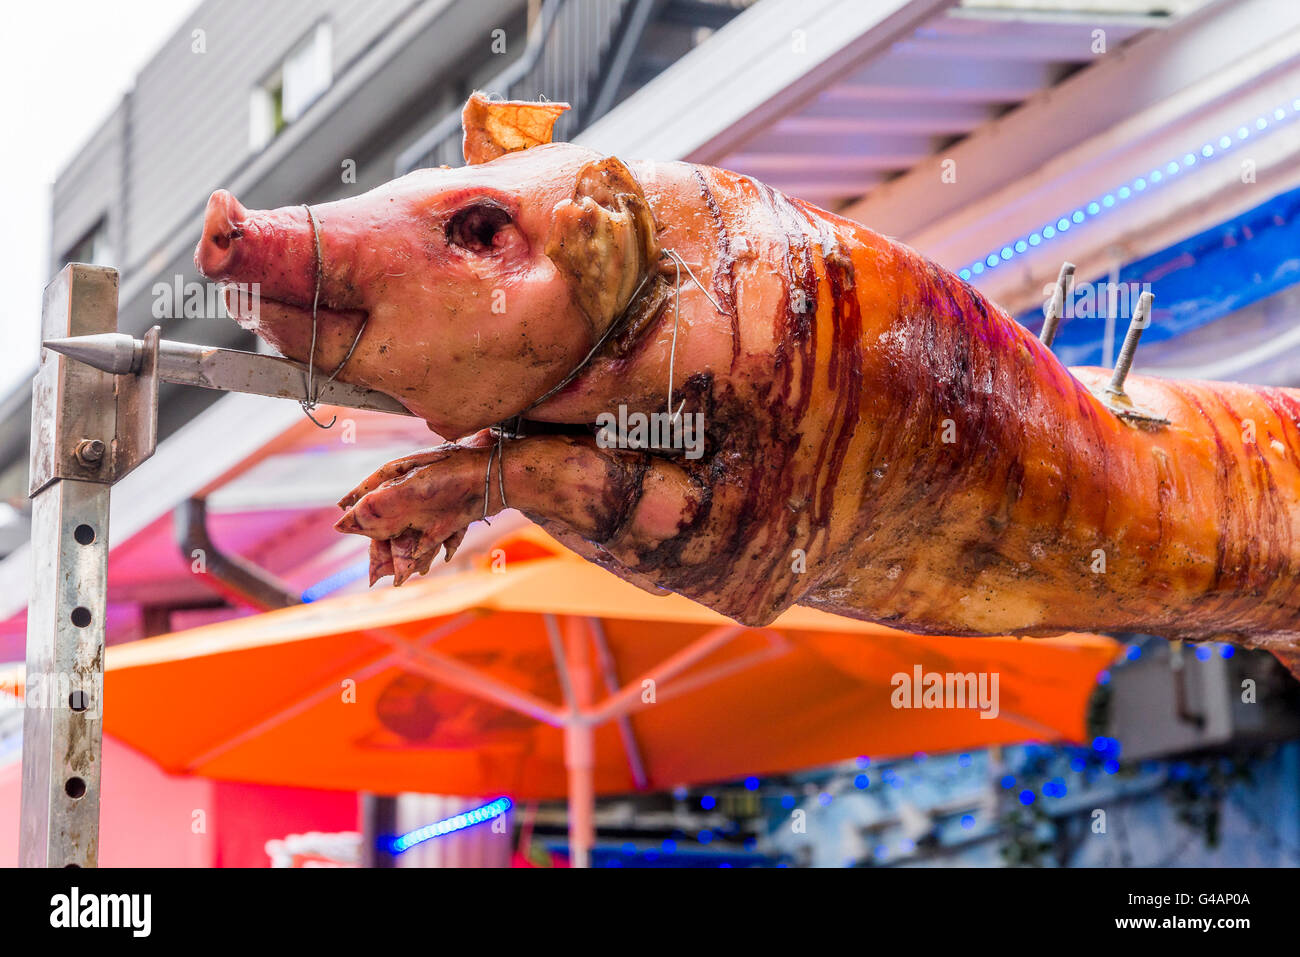 Roasting pig on a spit. - Stock Image